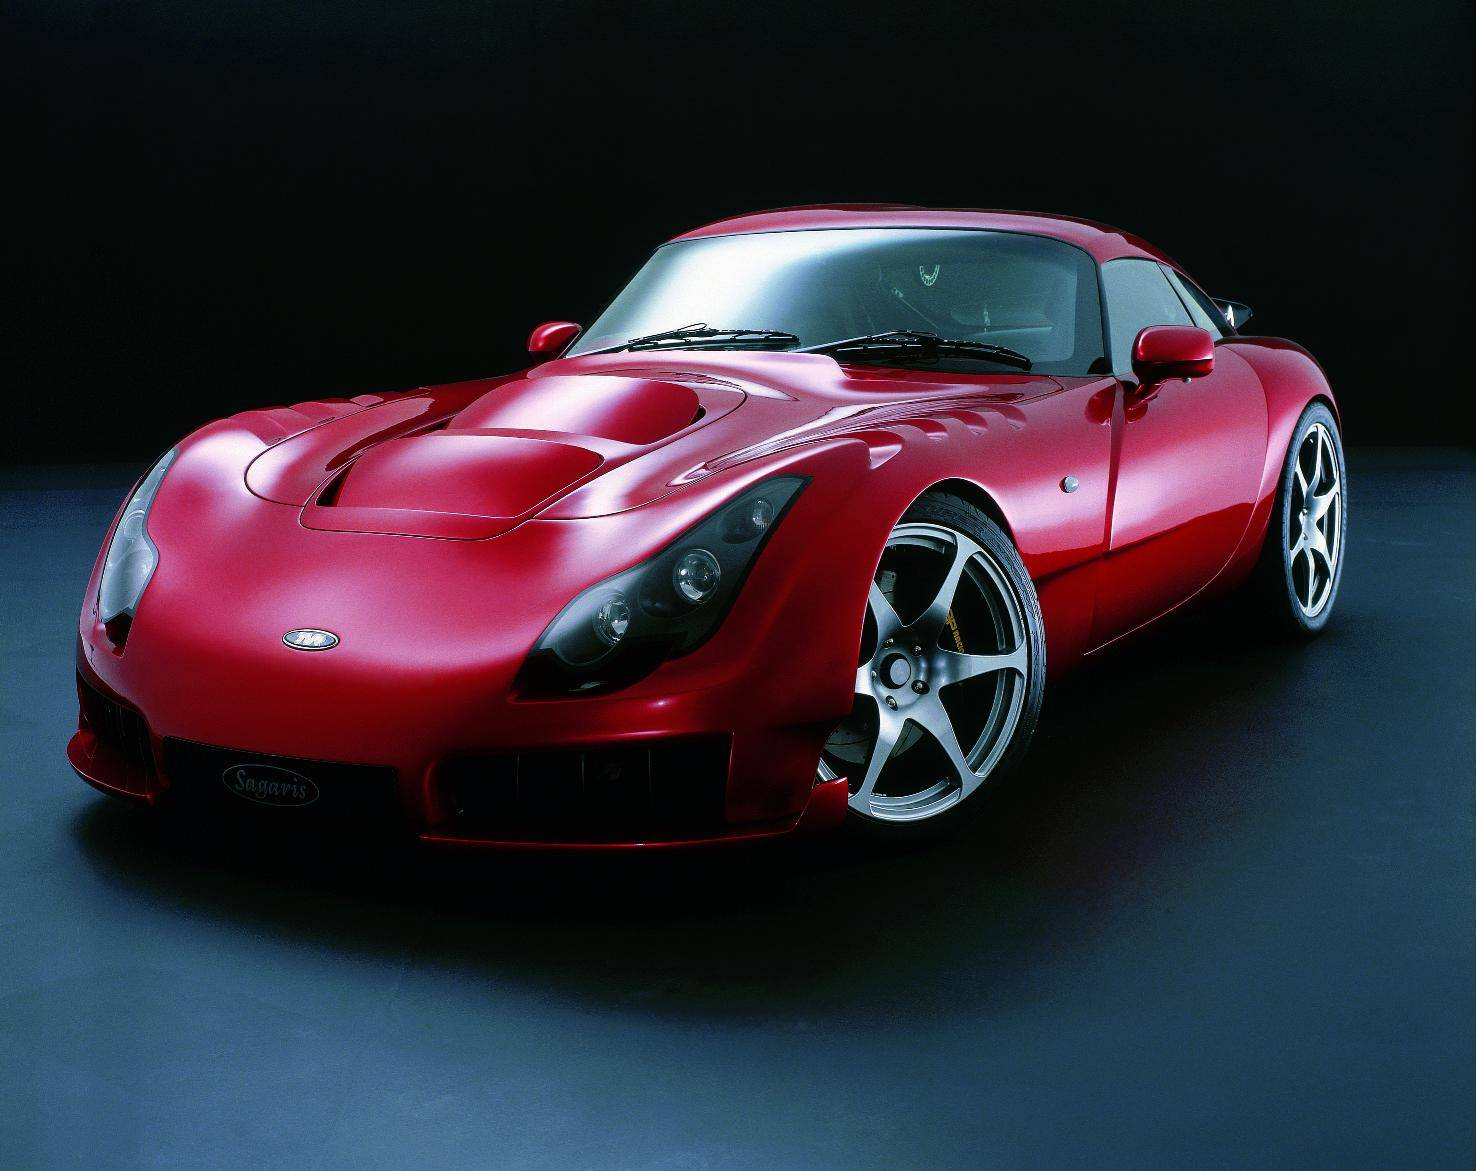 Classic British car -TVR